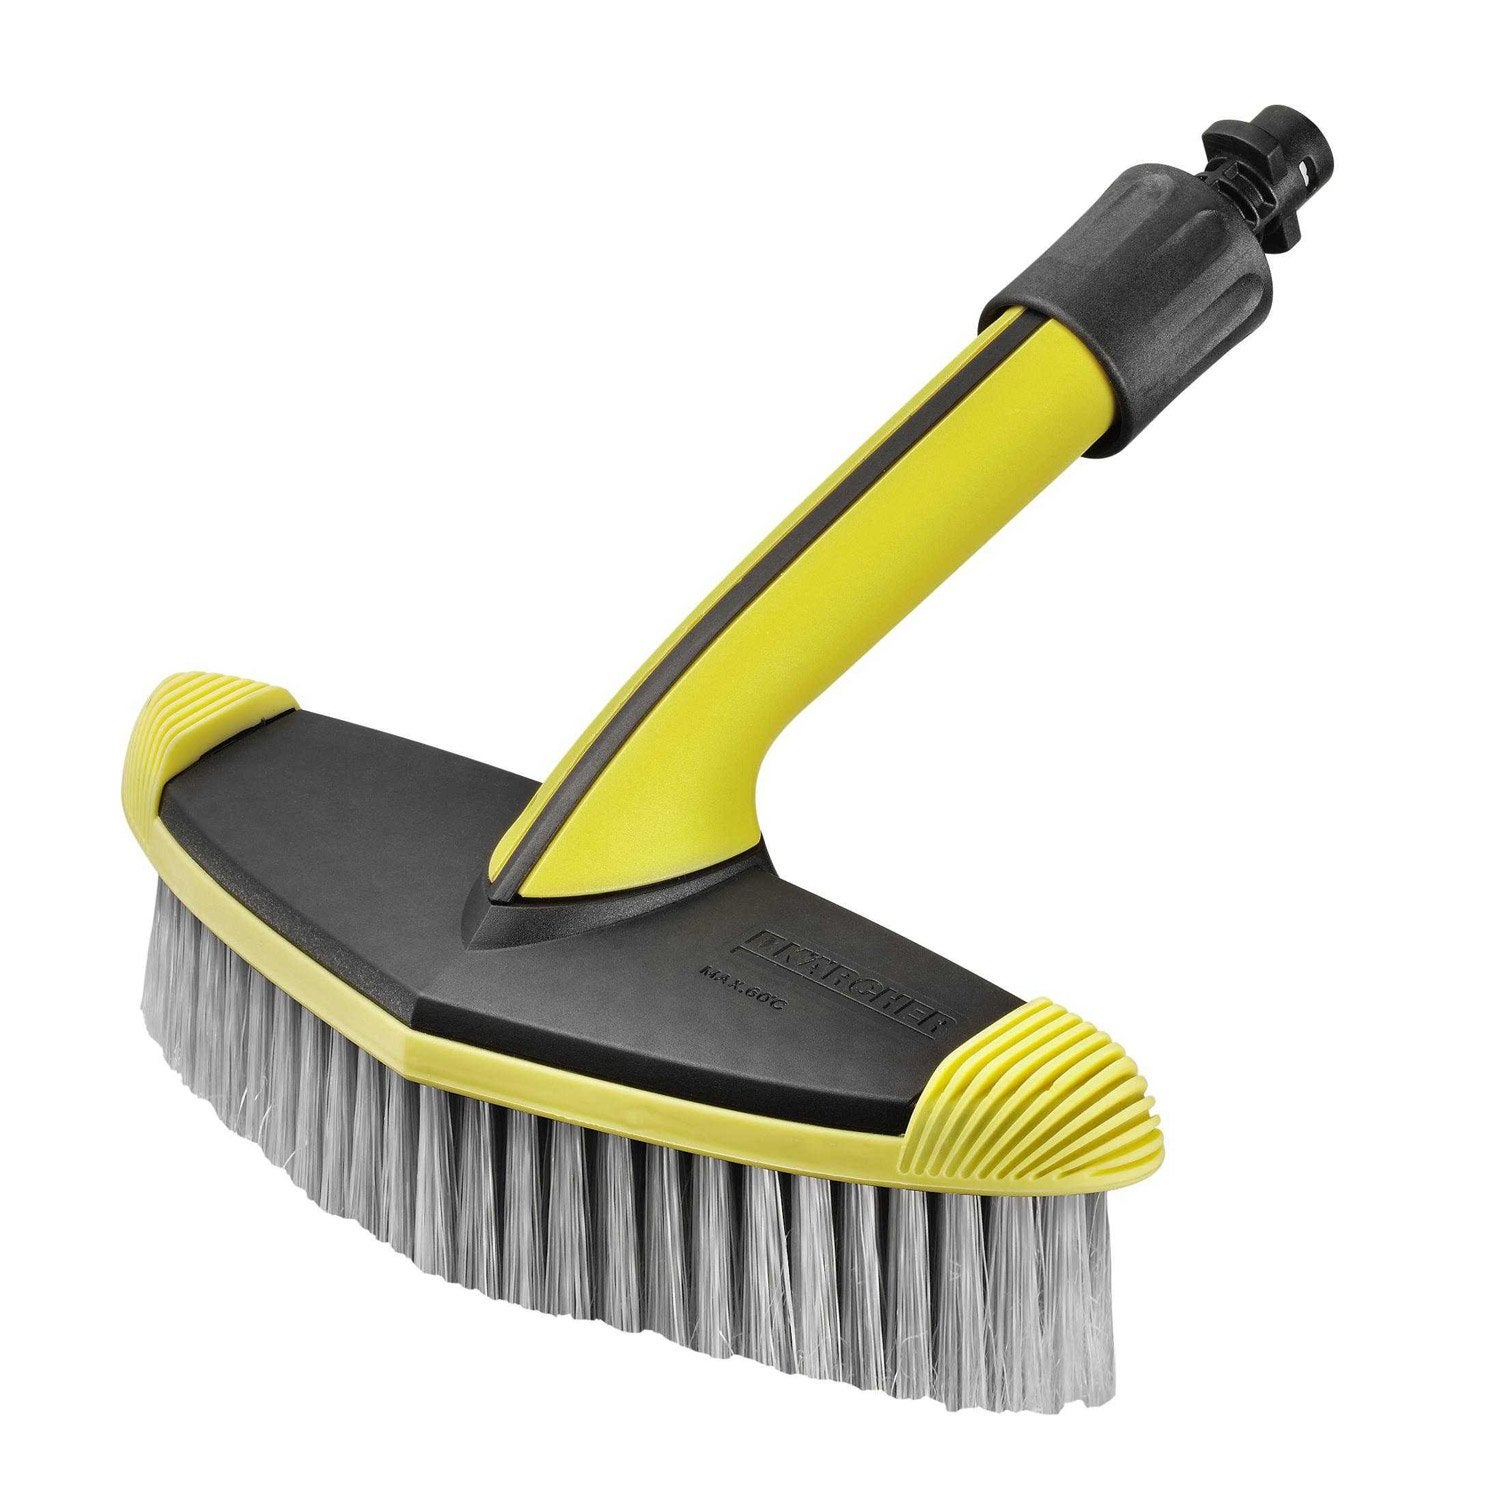 Brosse triangle karcher leroy merlin - Leroy merlin karcher ...